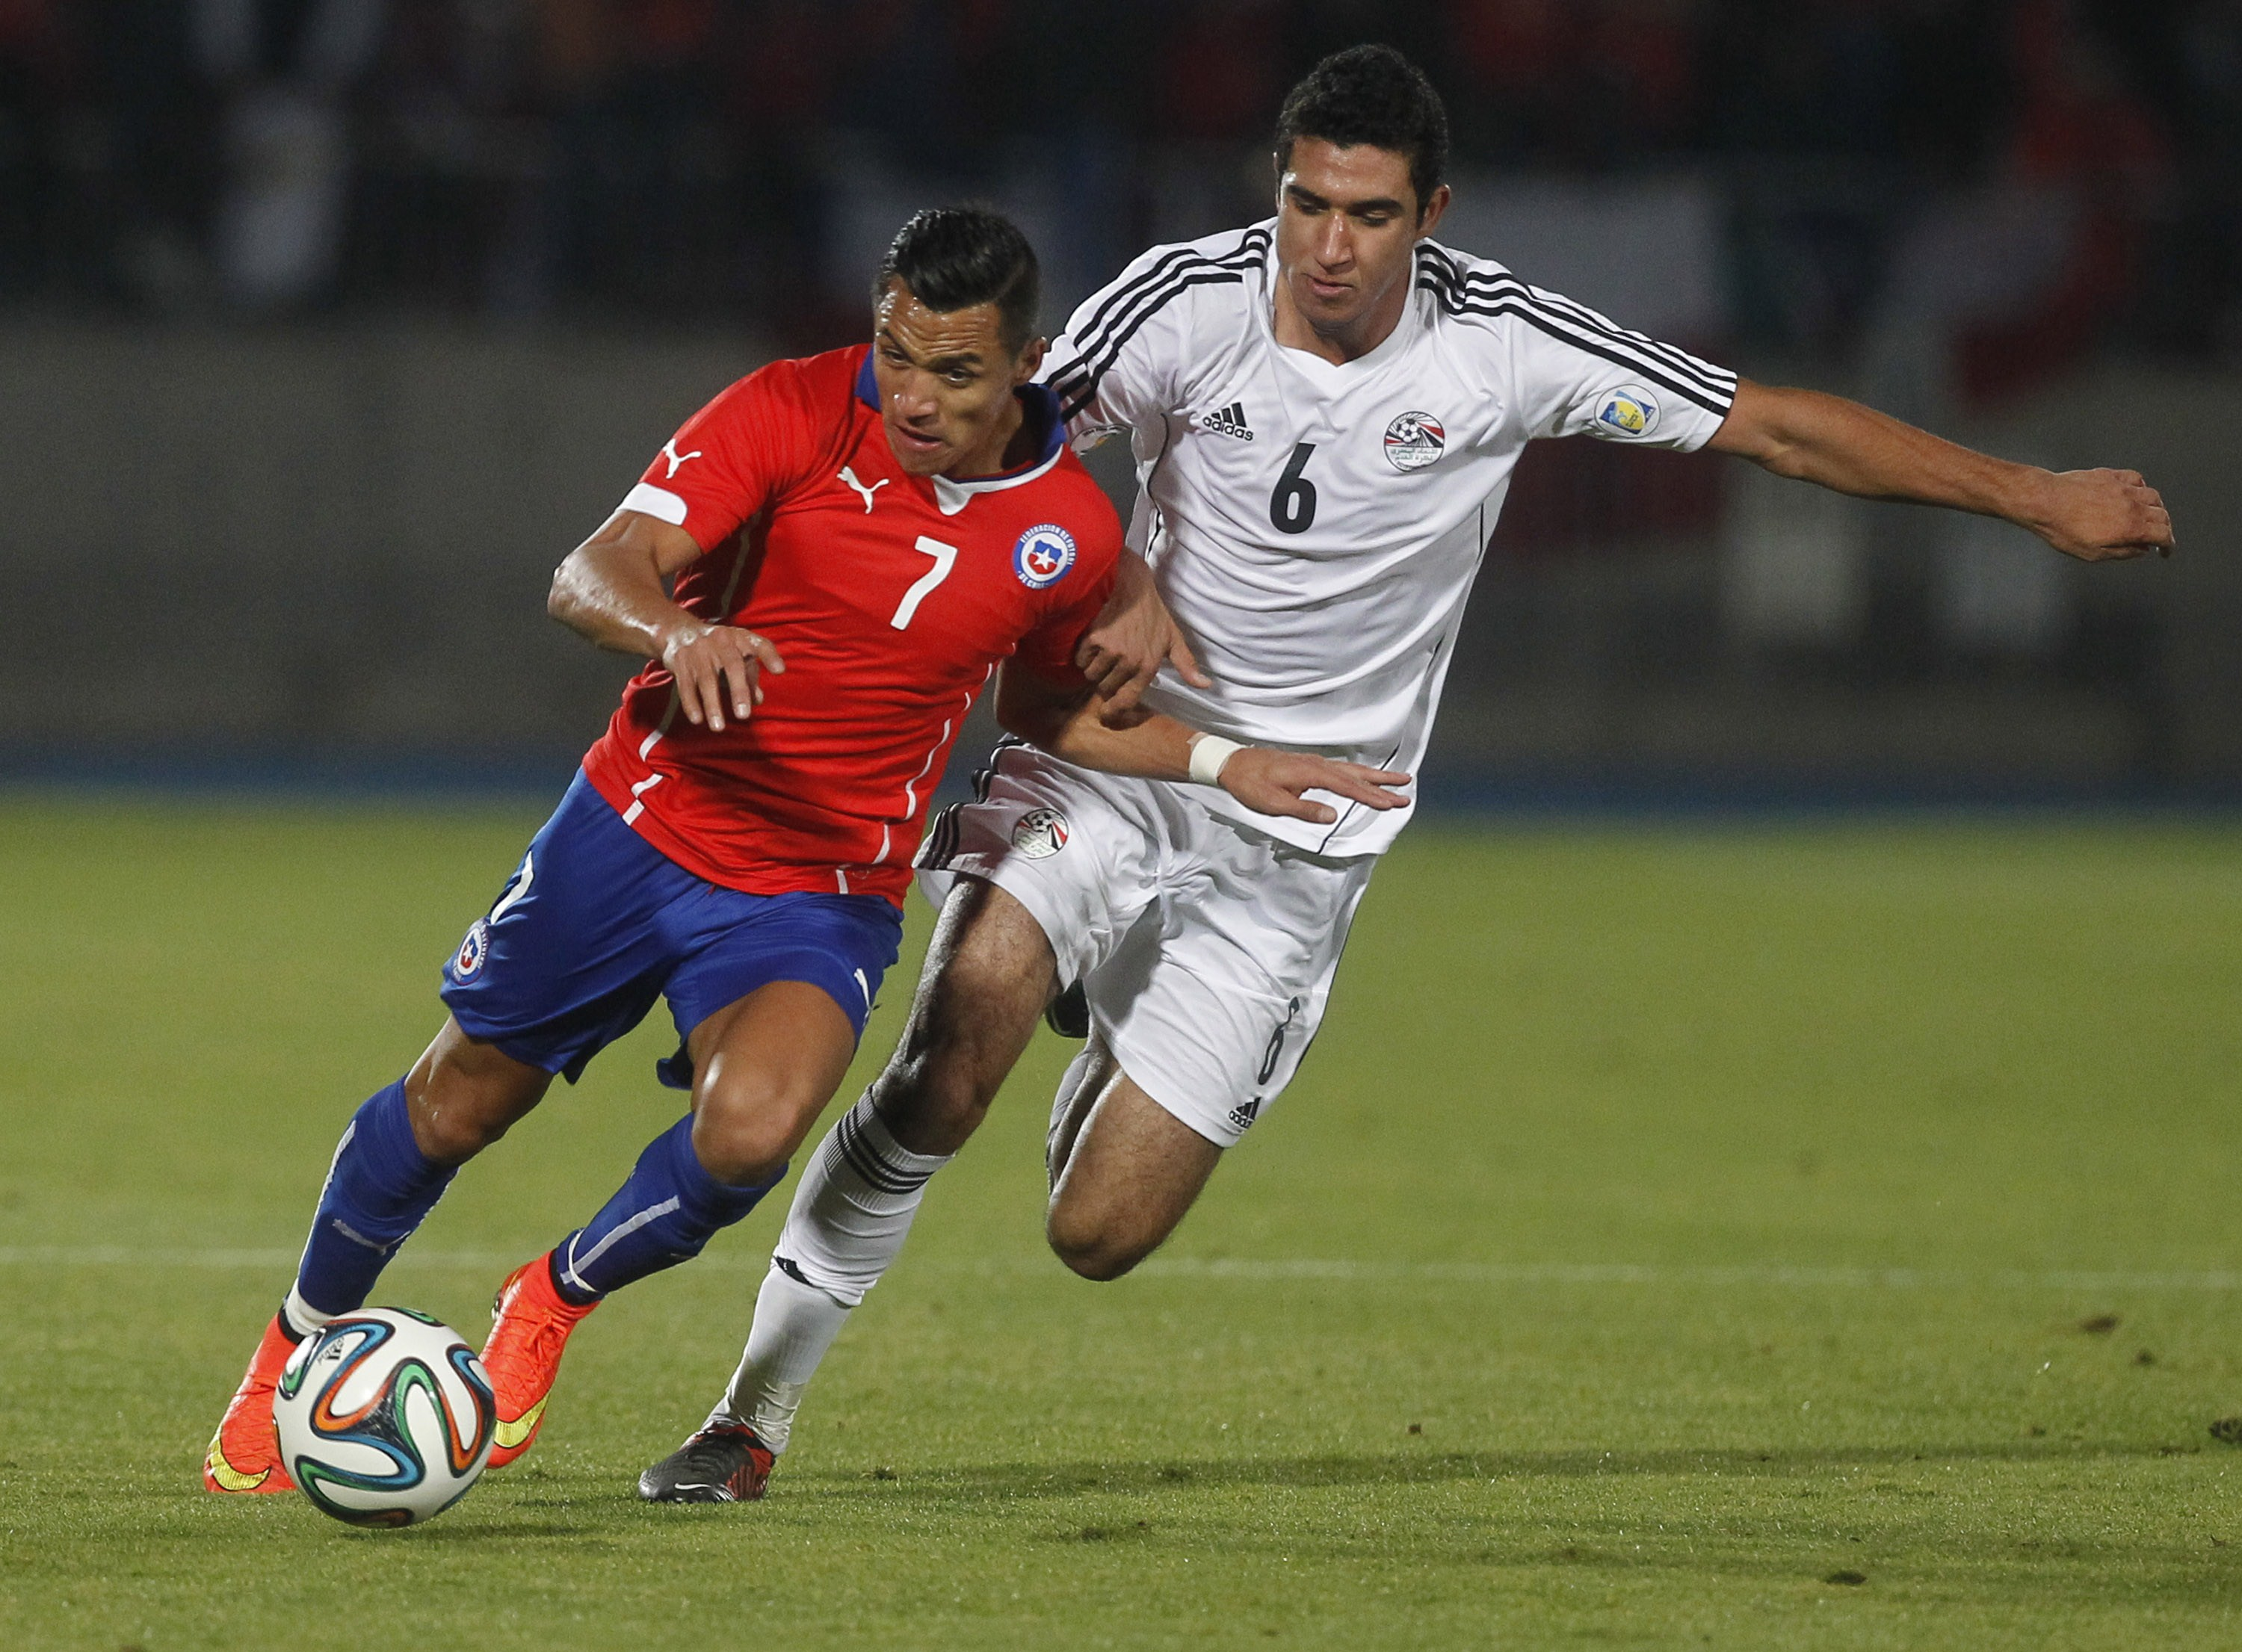 Chilean national team footballer Alexis Sanchez (L) vies for the ball with Egypt's Ramy Rabia (R) during a friendly match in Santiago, on May 30, 2014 less than a month before the start of the FIFA World Cup Brazil 2014.  (AFP PHOTO/CLAUDIO REYES)